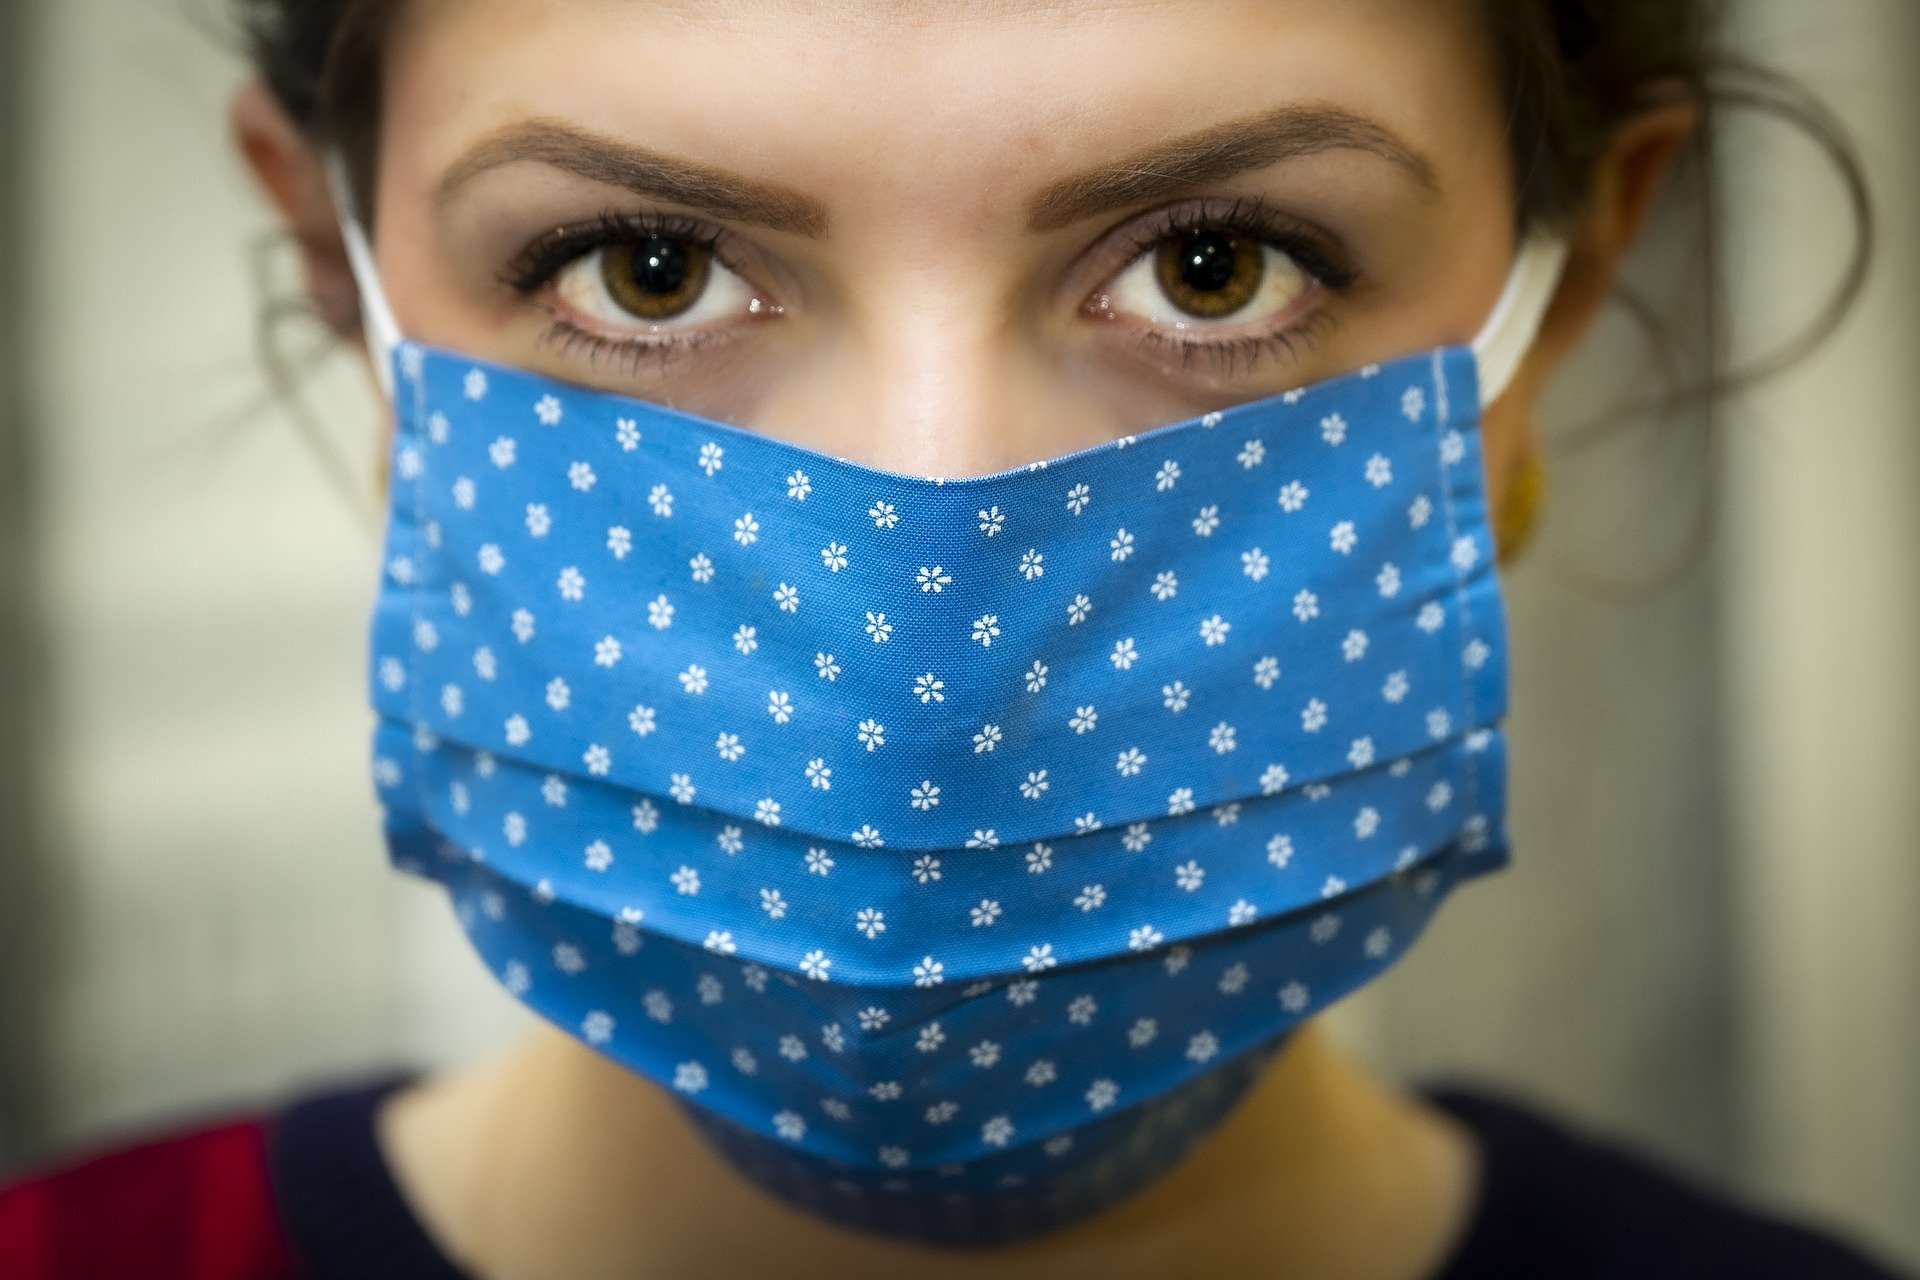 woman looking at the camera wearing a blue mask with white polka dots